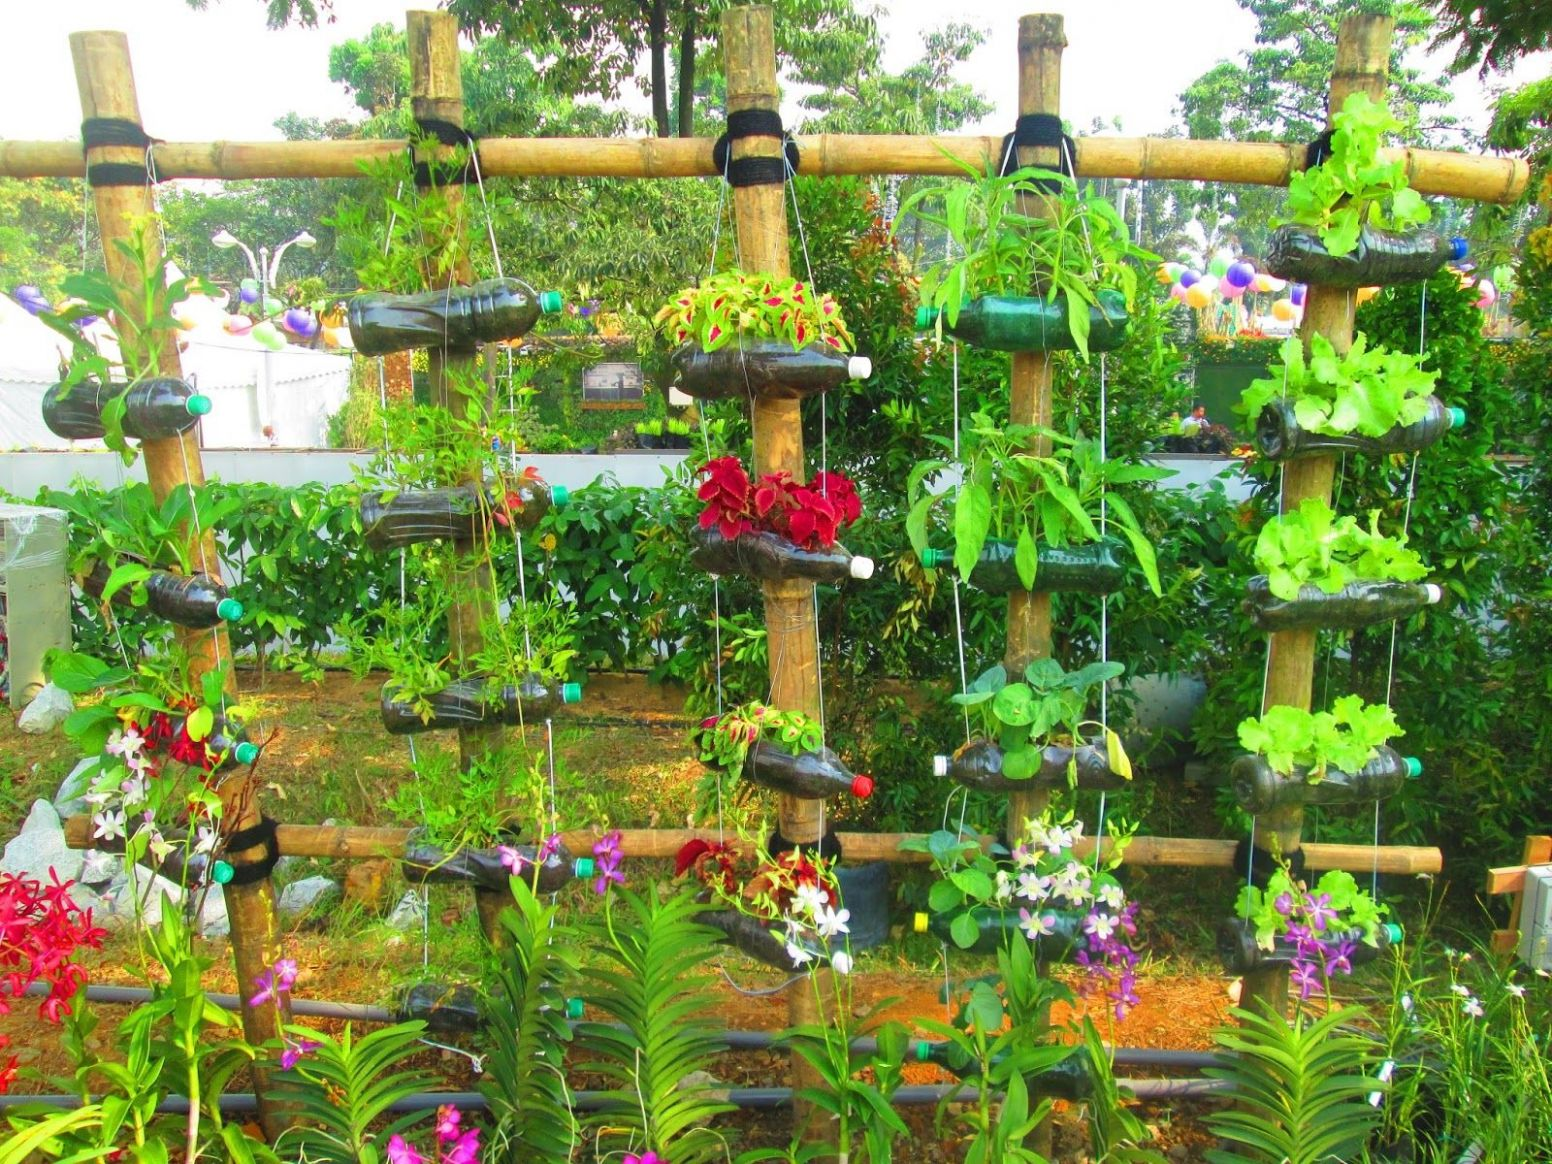 10 Awesome Diy Garden Ideas From Recycled Materials (With images ...